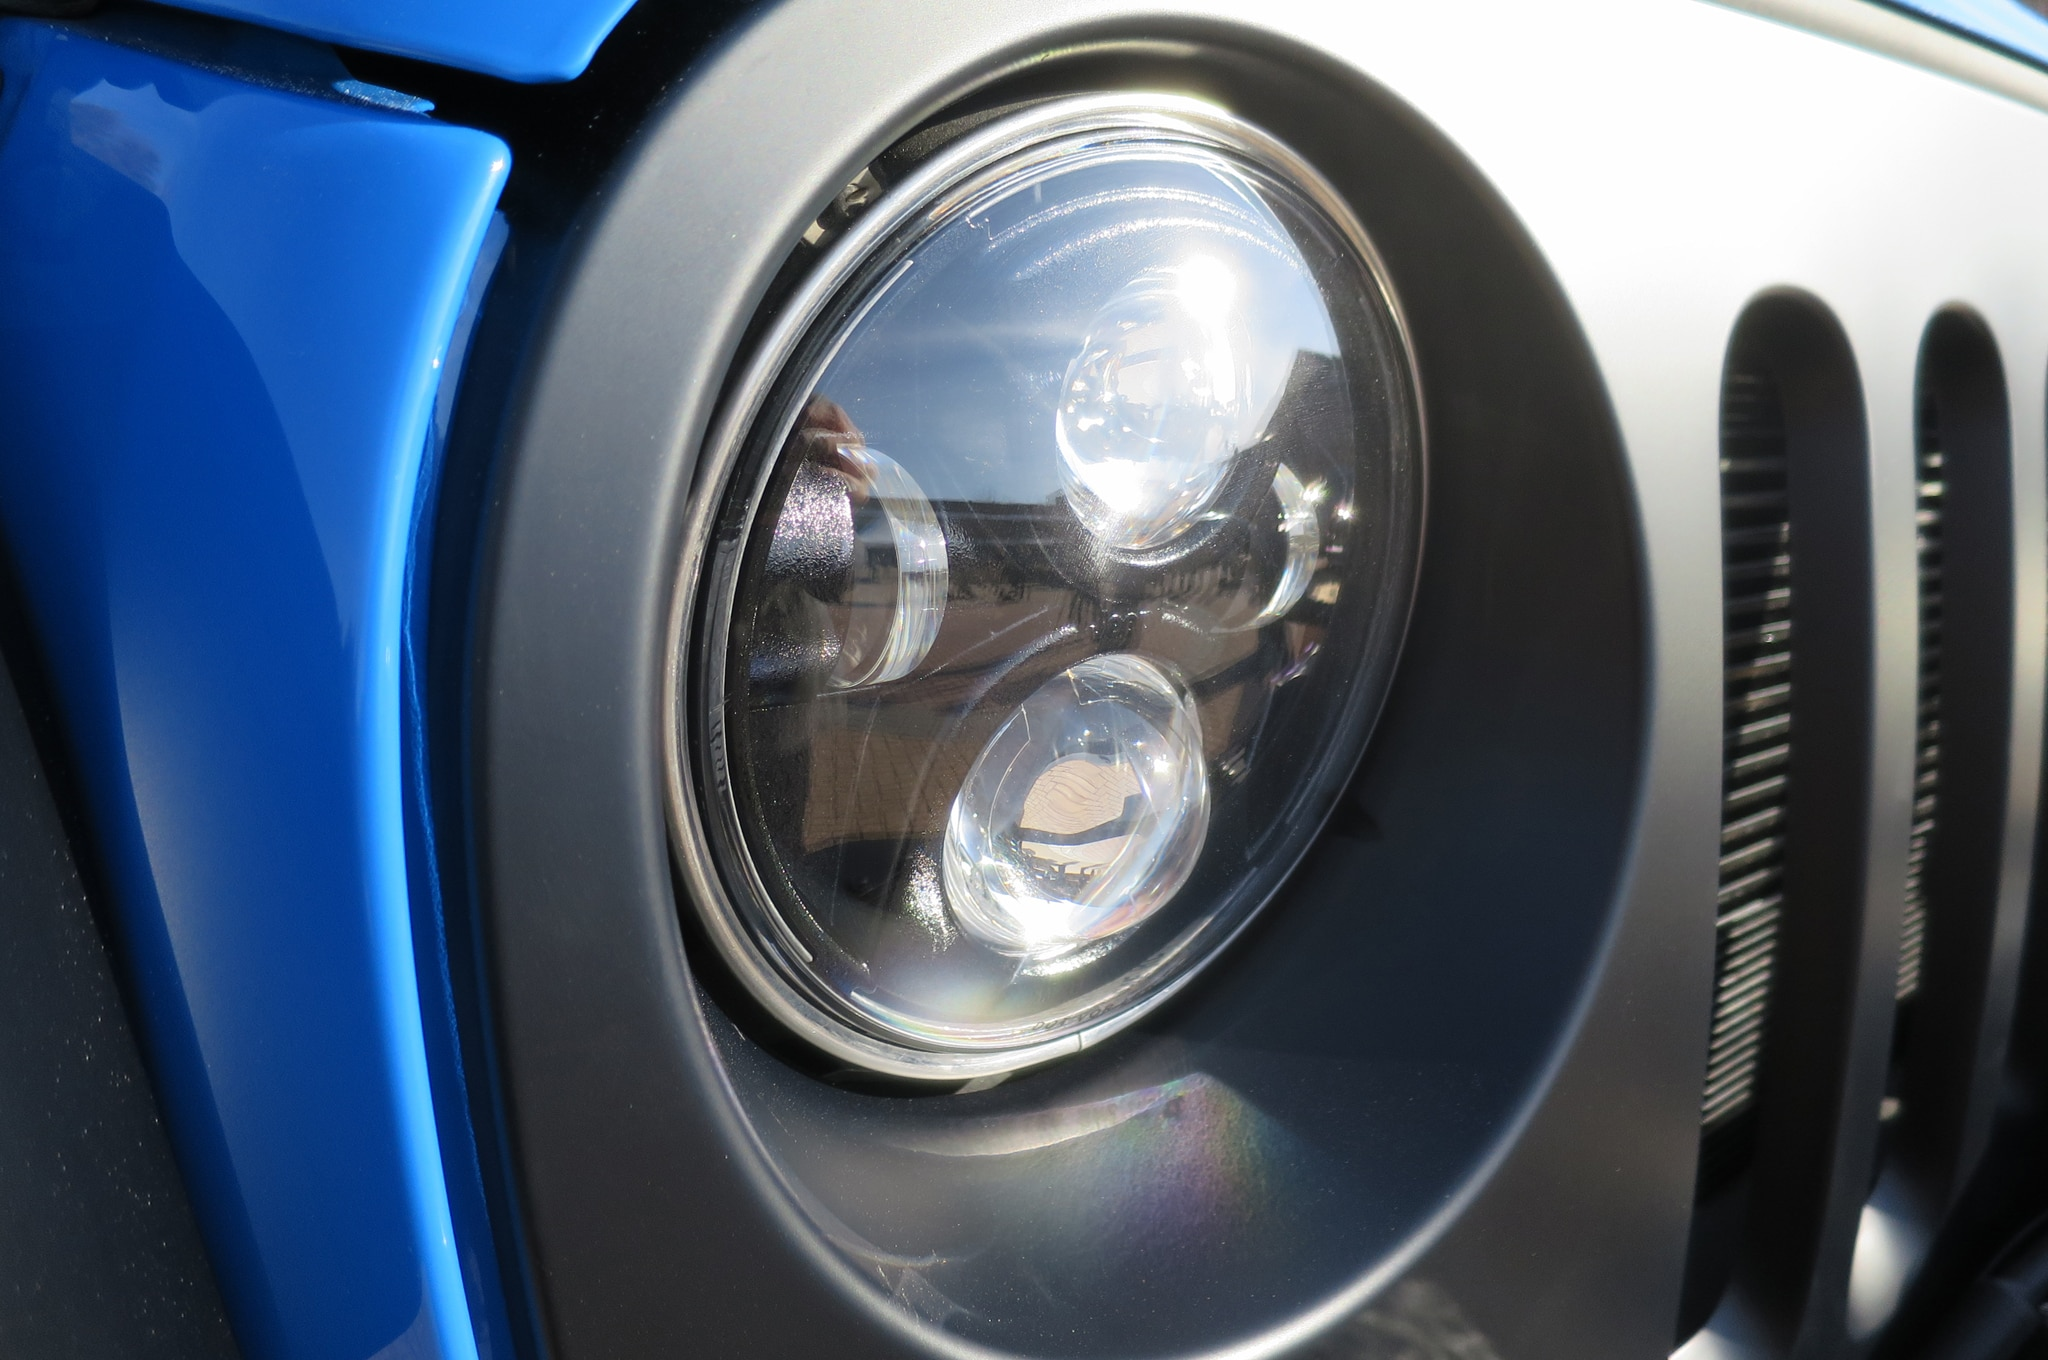 Jeep Wrangler Maximum Performance Concept headlight